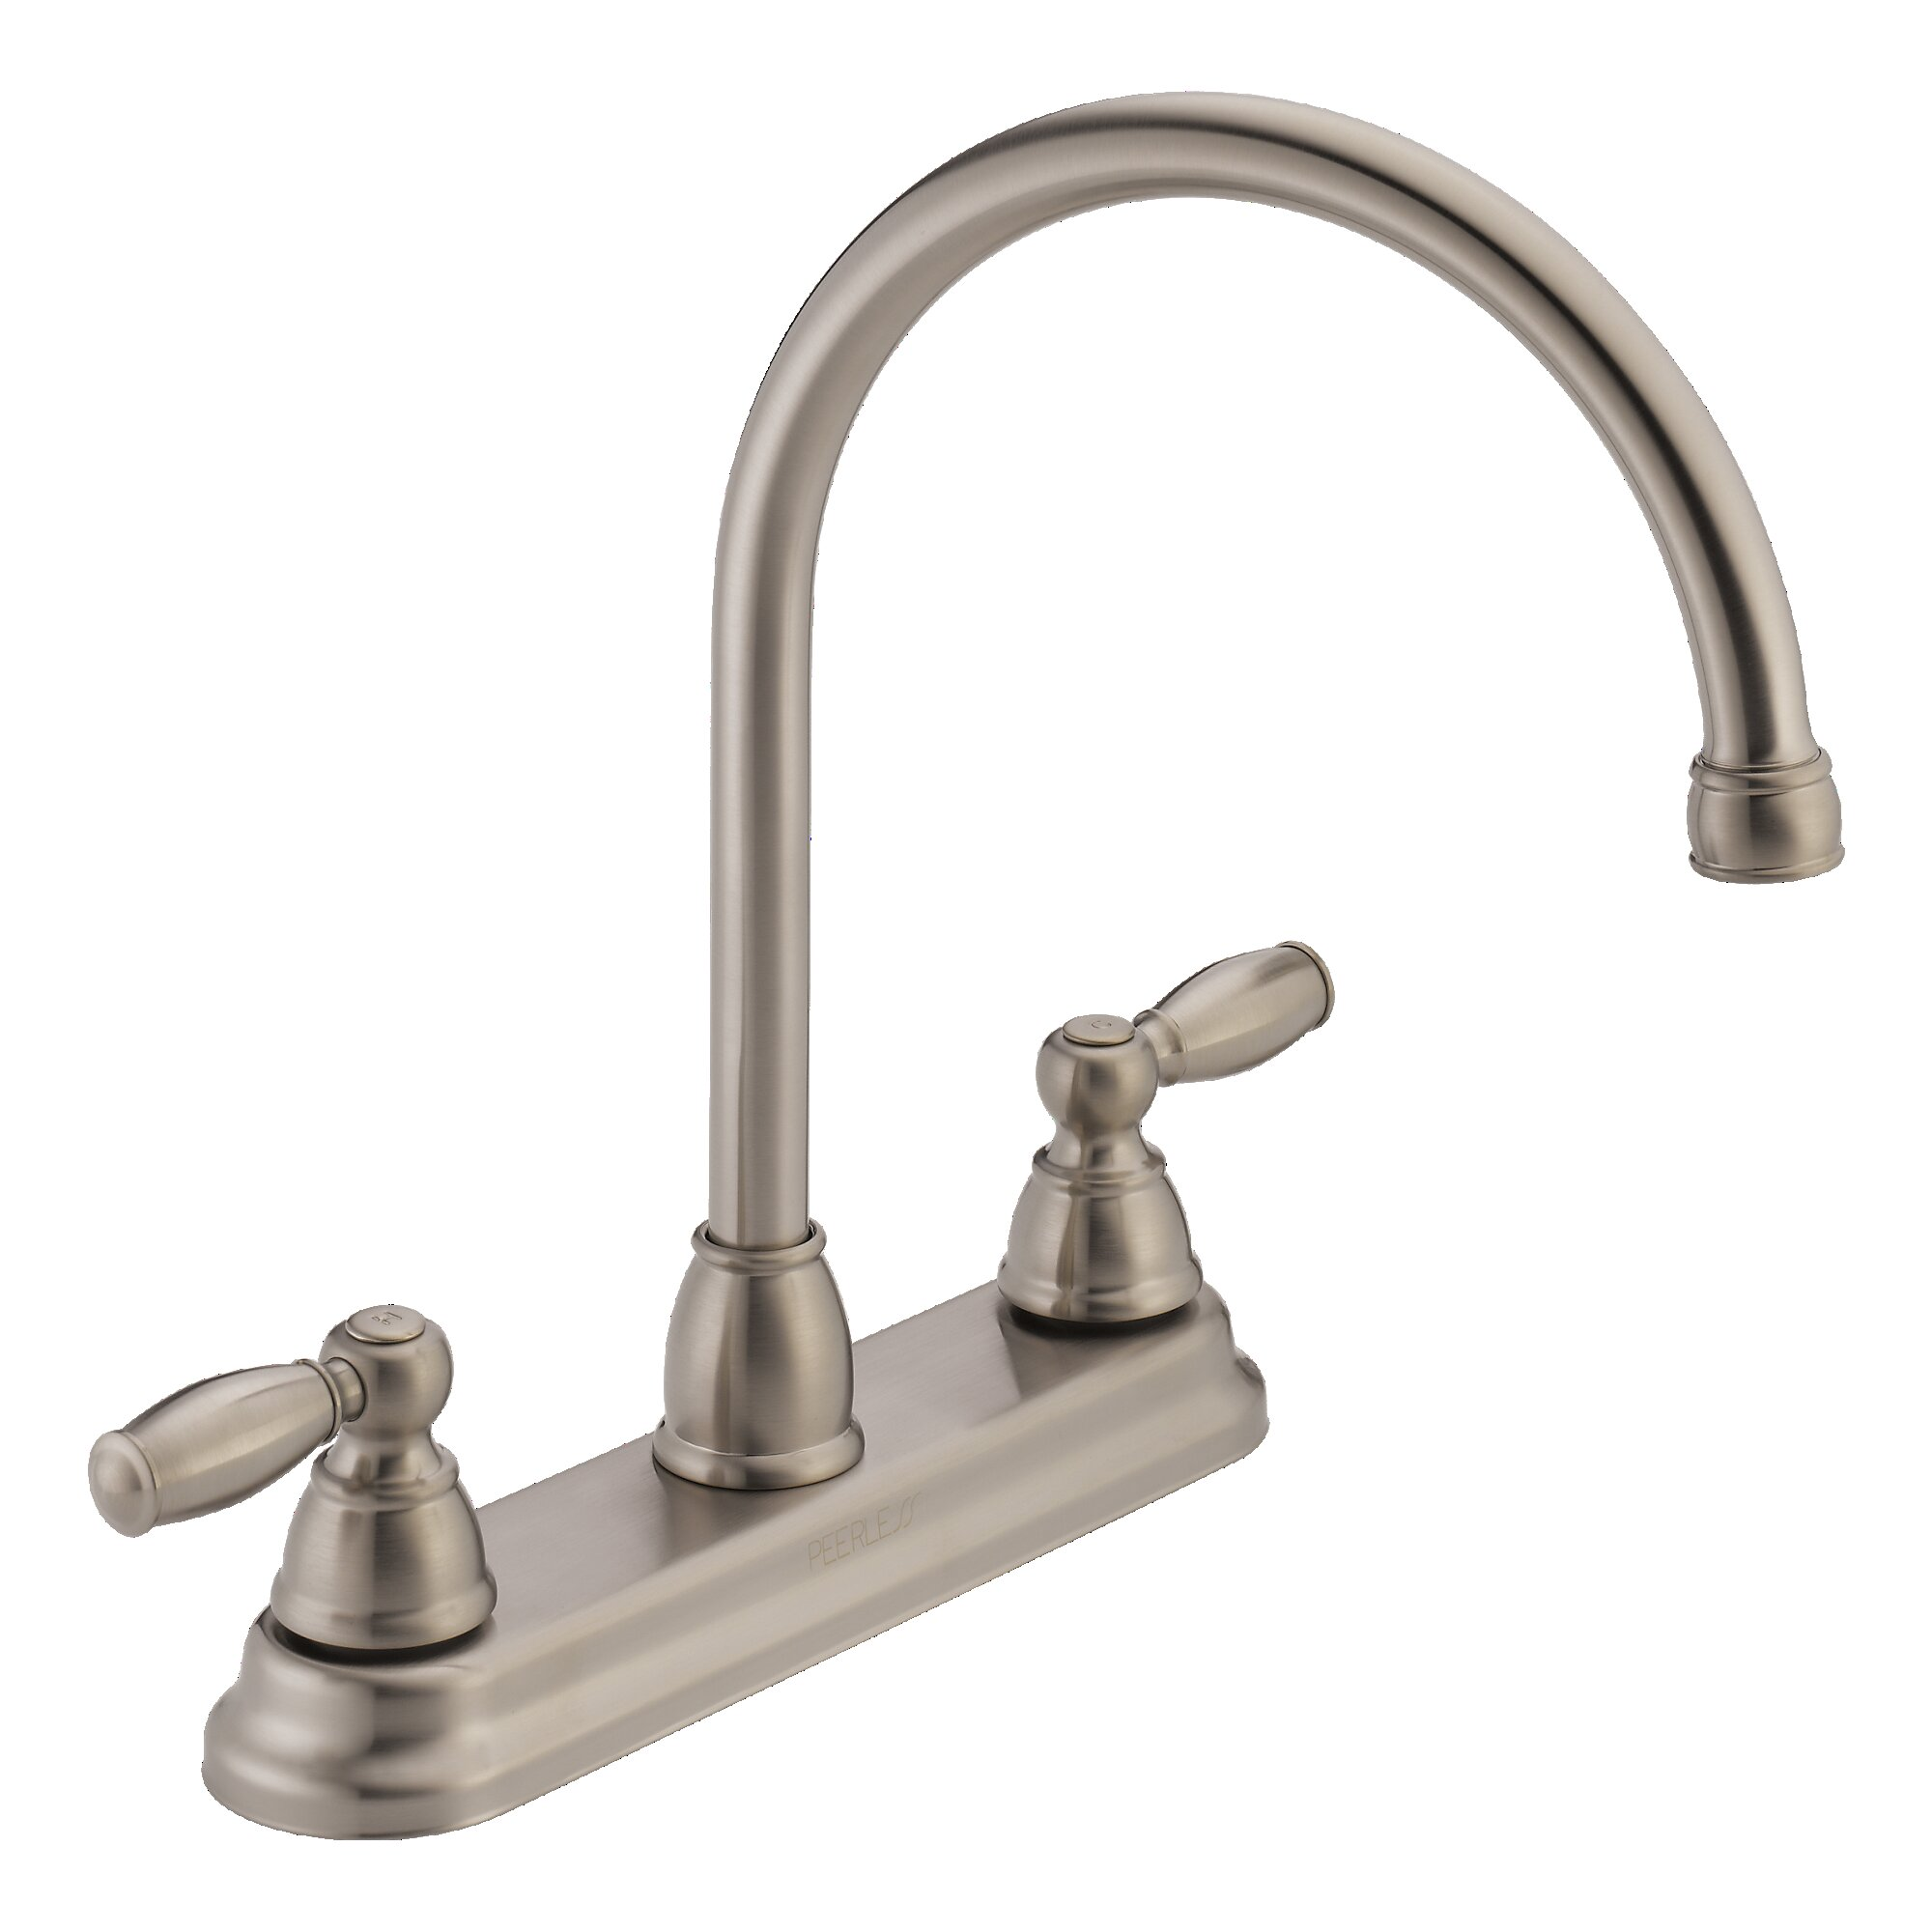 double handle kitchen faucet peerless faucets apex handle kitchen faucet ebay 17404